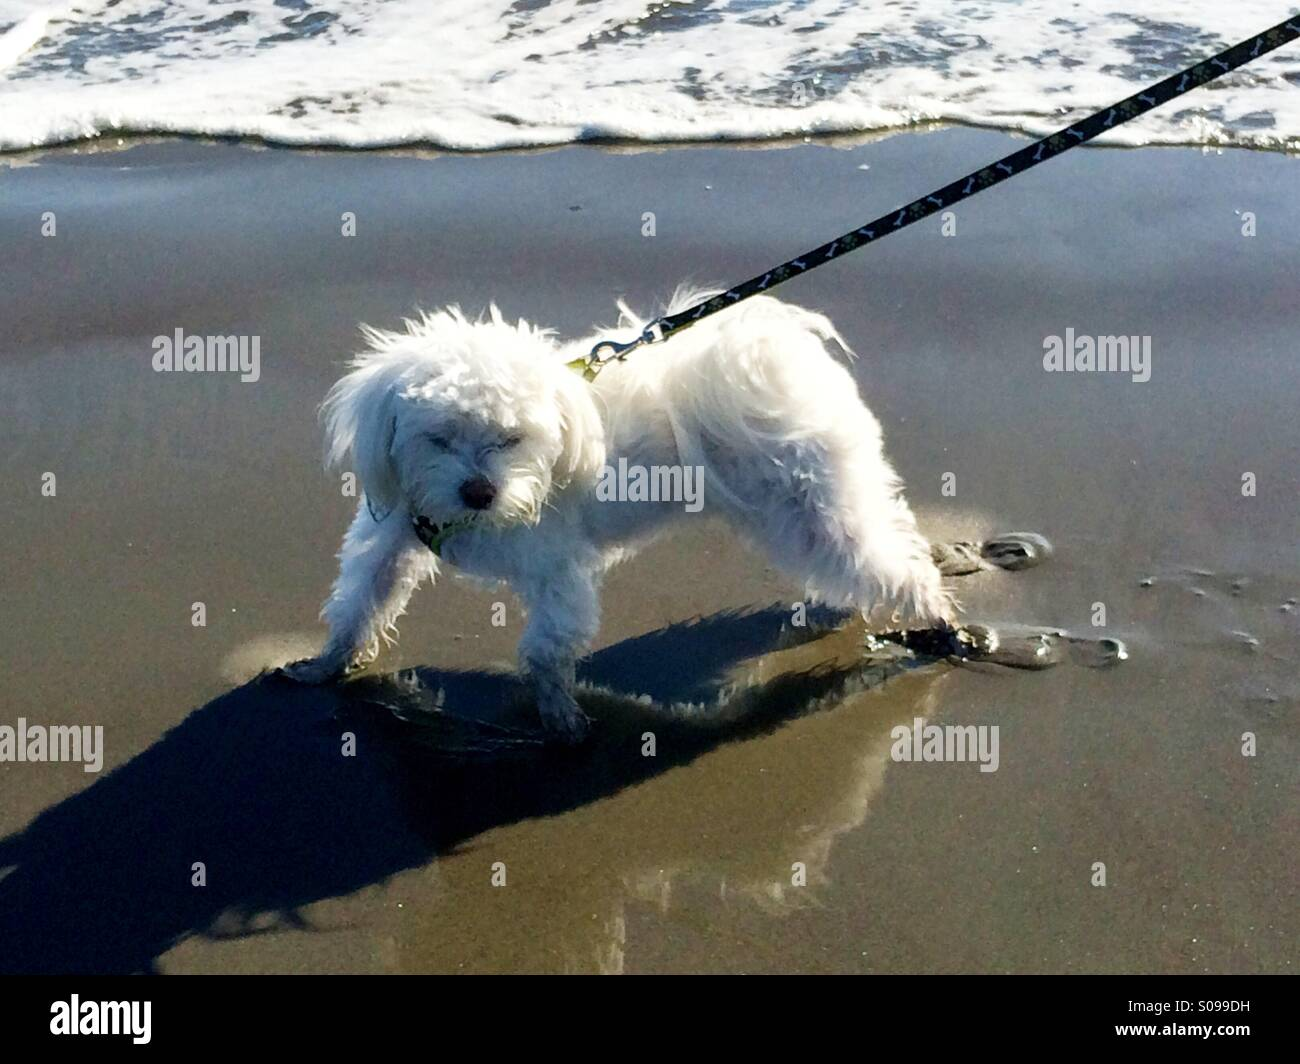 A white Maltese dog's first time at the ocean - Stock Image